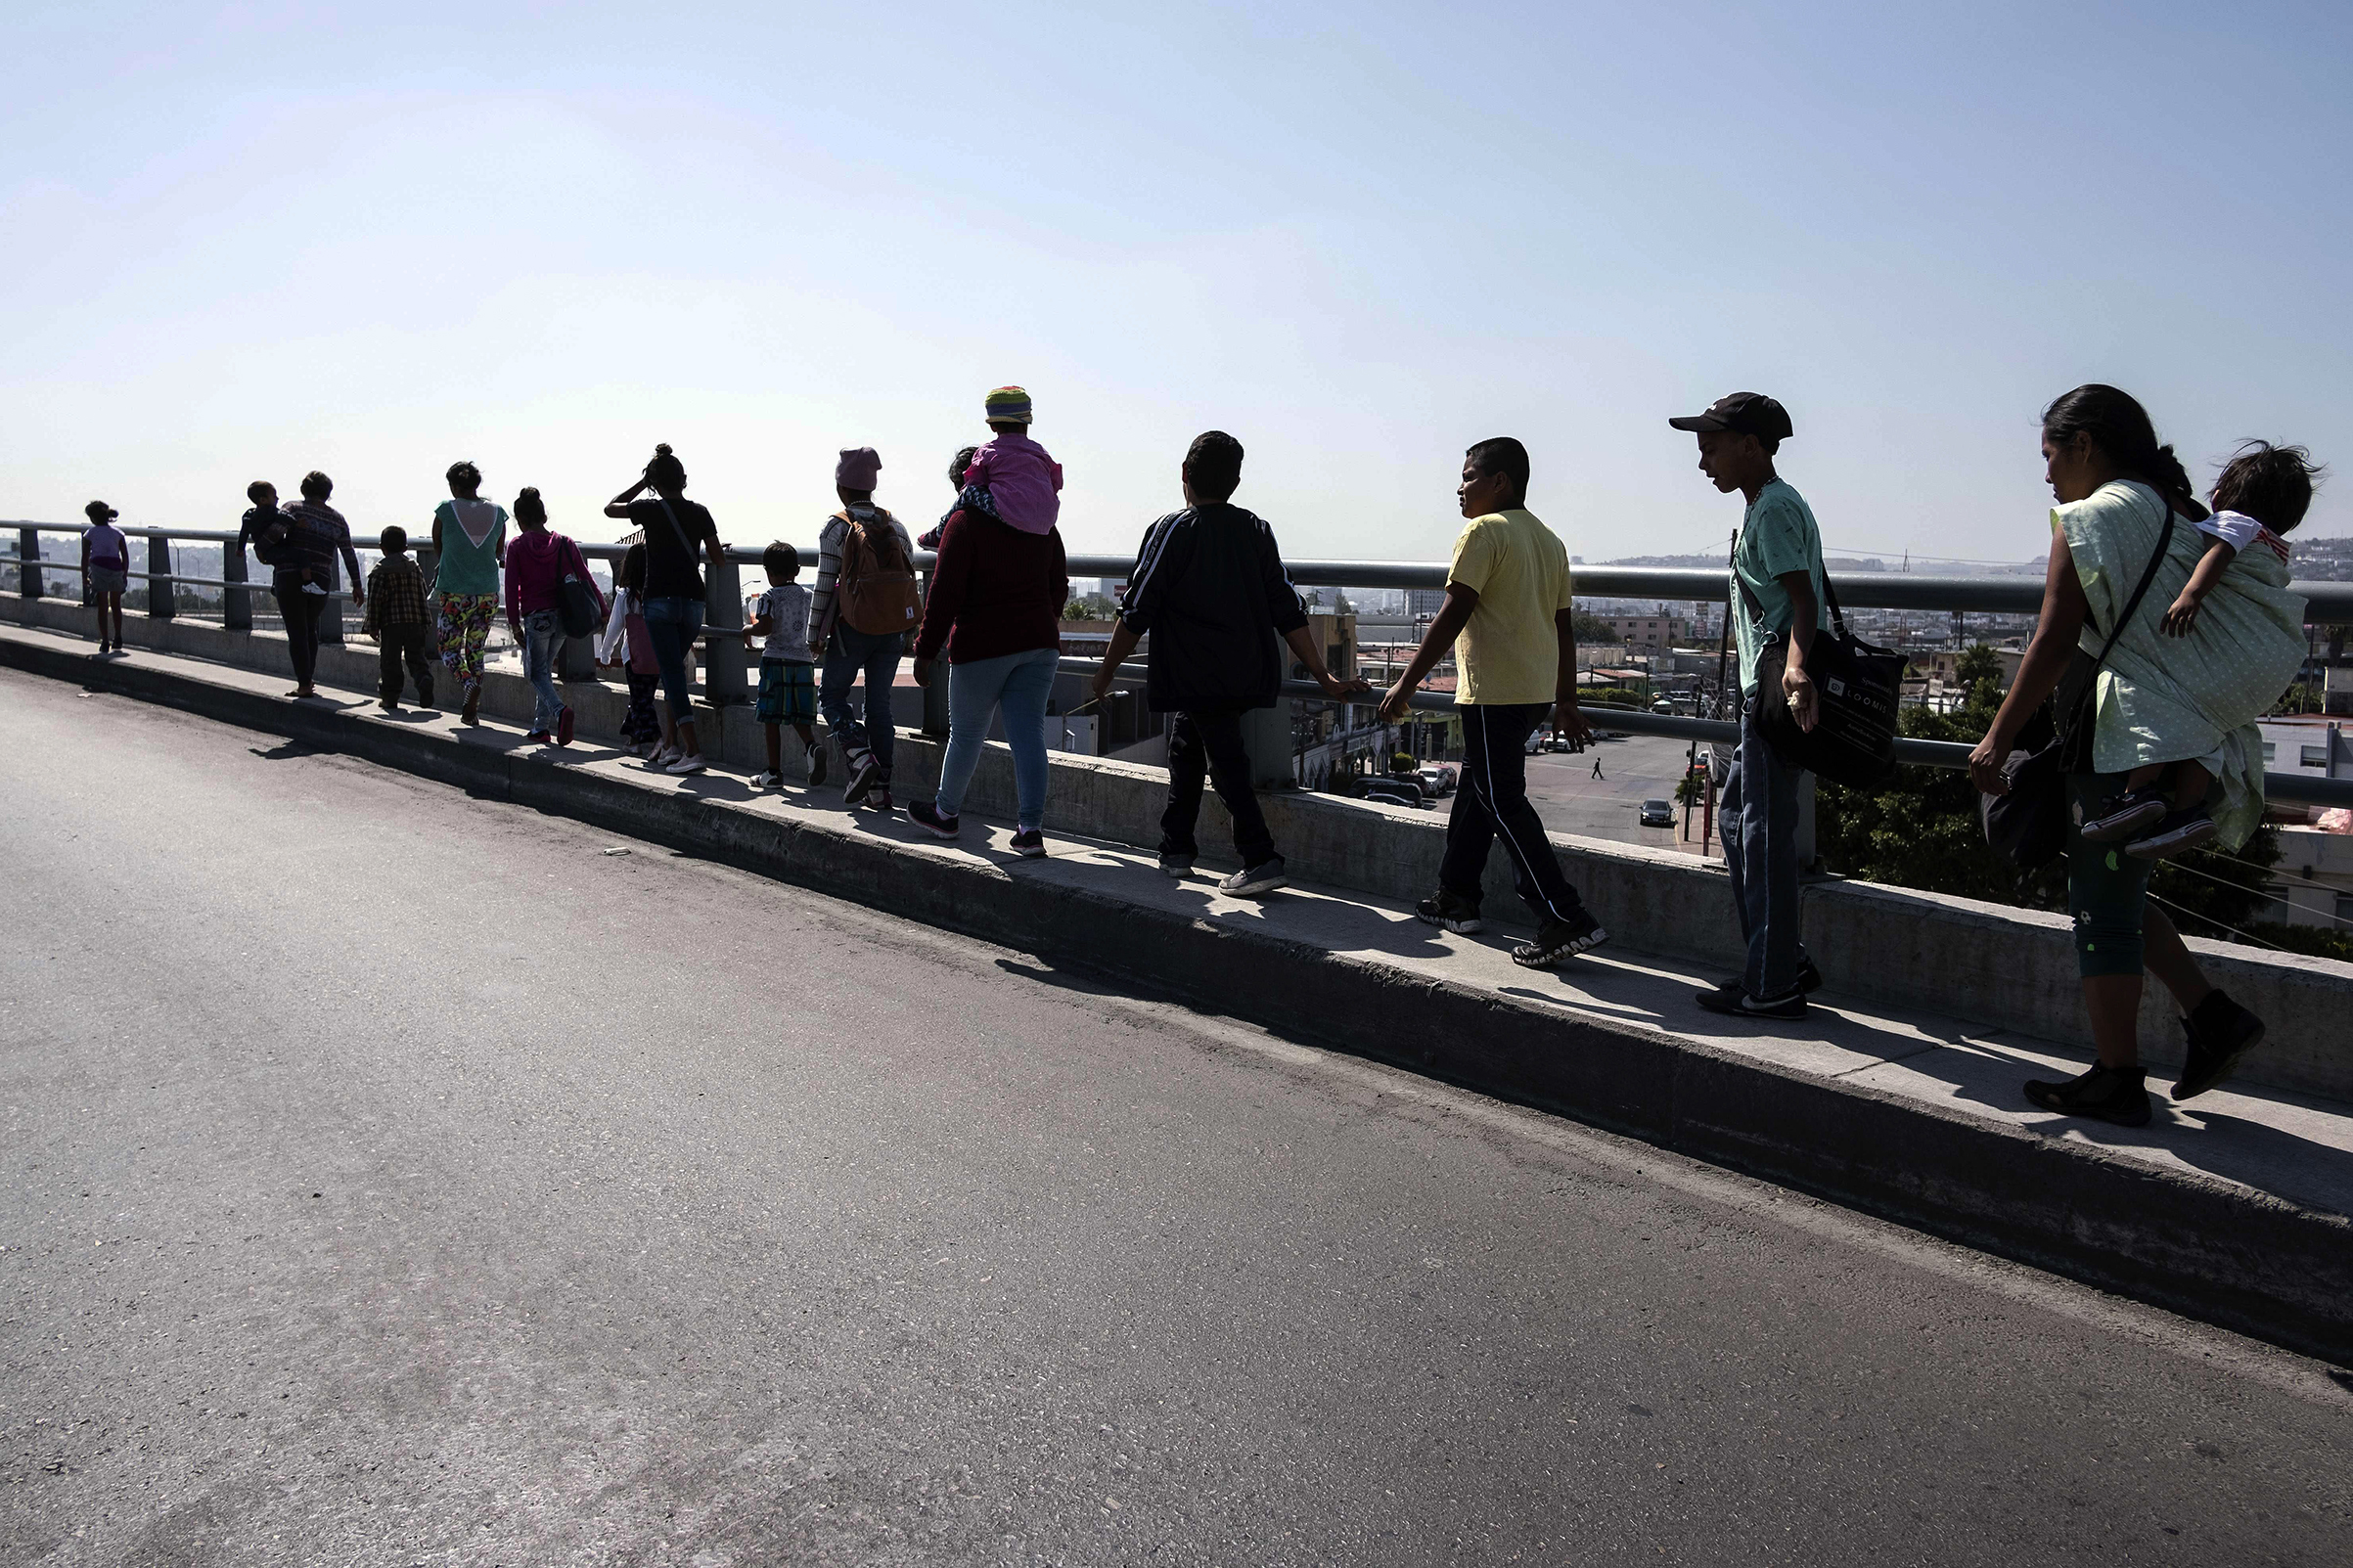 Central American migrants travelling in the  Migrant Via Crucis  caravan walk to their legal counselling meeting in Tijuana, Baja California state, Mexico, on April 28, 2018